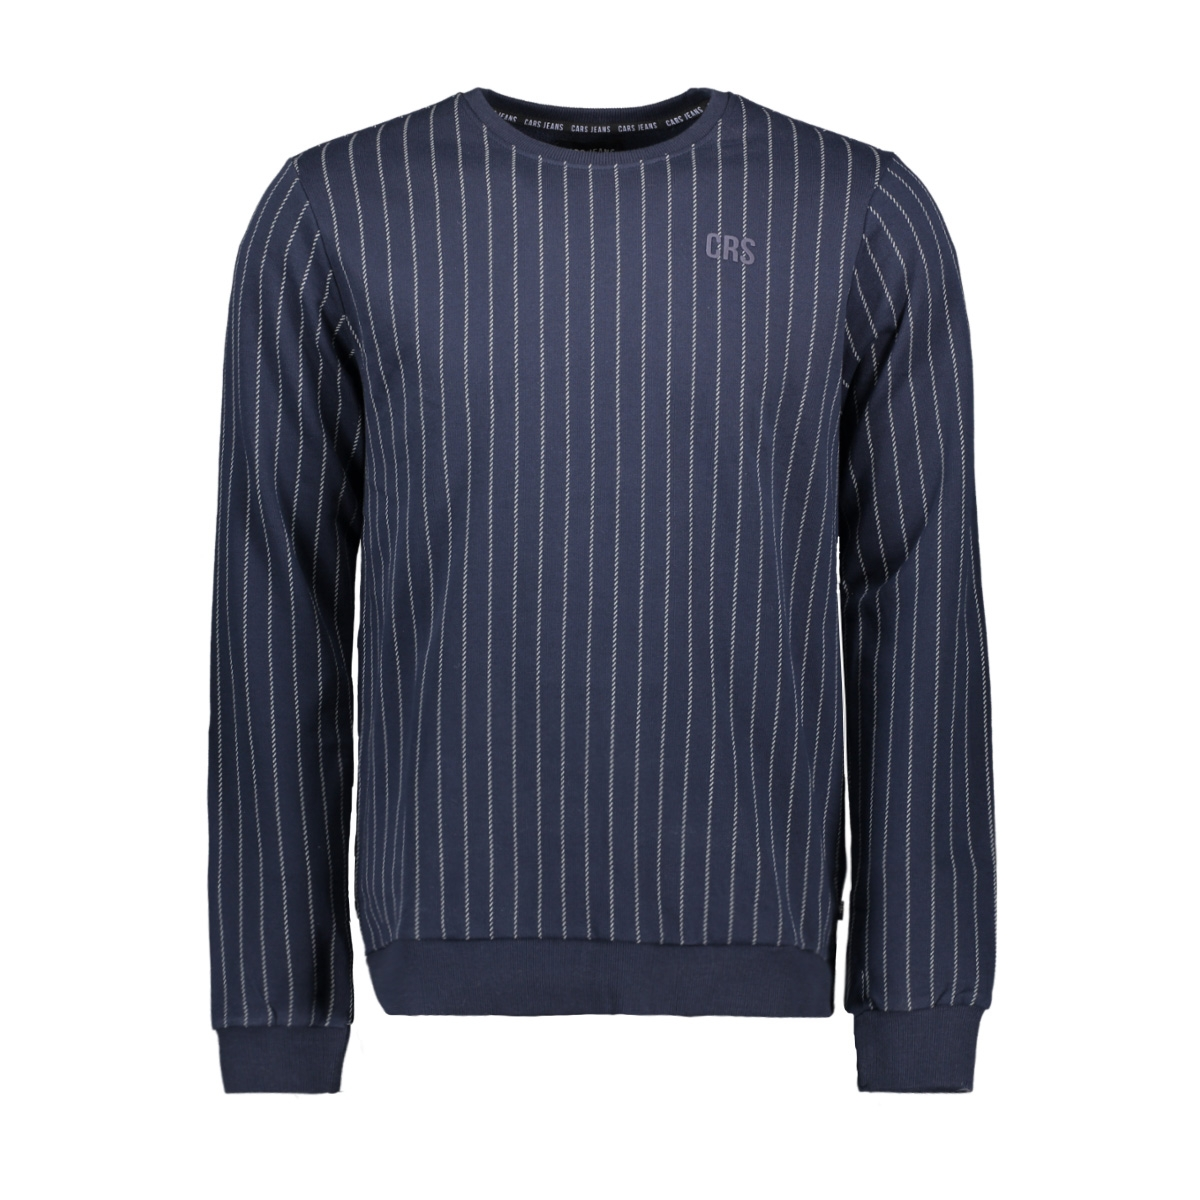 albi sw 4101012 cars sweater navy